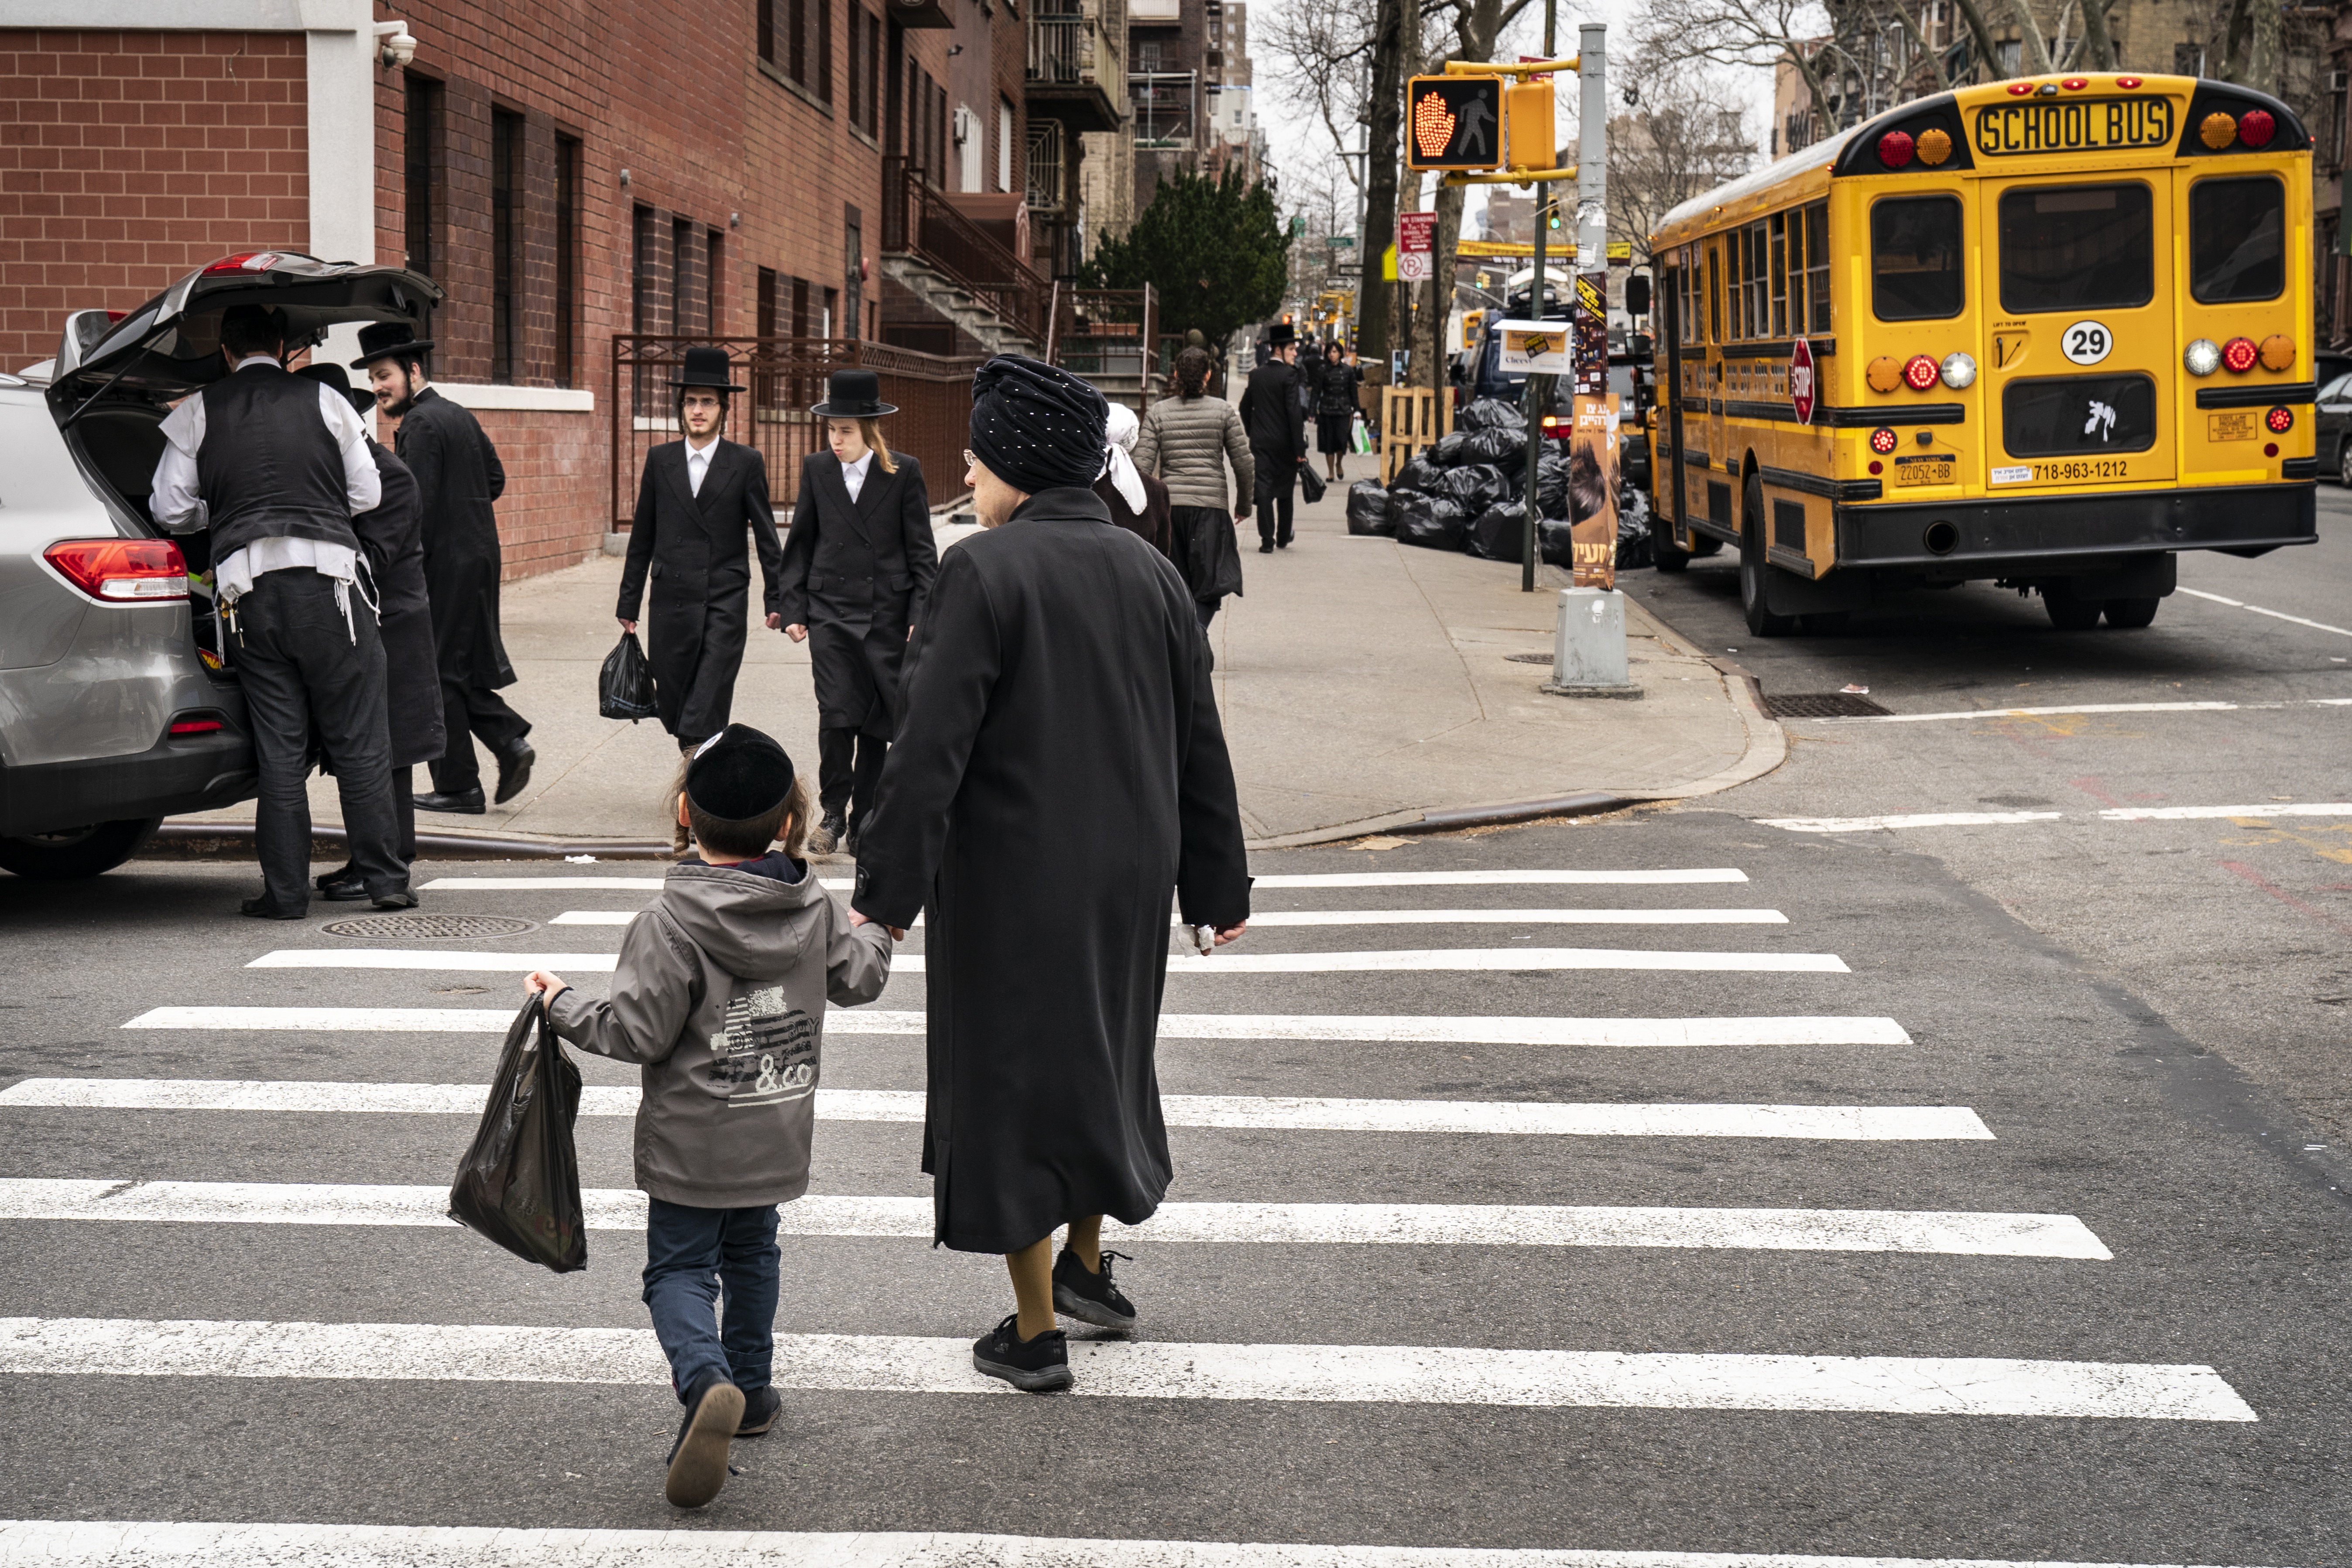 NEW YORK, NY - APRIL 9: Pedestrians walk near the Yeshiva Kehilath Yakov School in the South Williamsburg neighborhood, April 9, 2019 in the Brooklyn borough of New York City. (Photo by Drew Angerer/Getty Images)